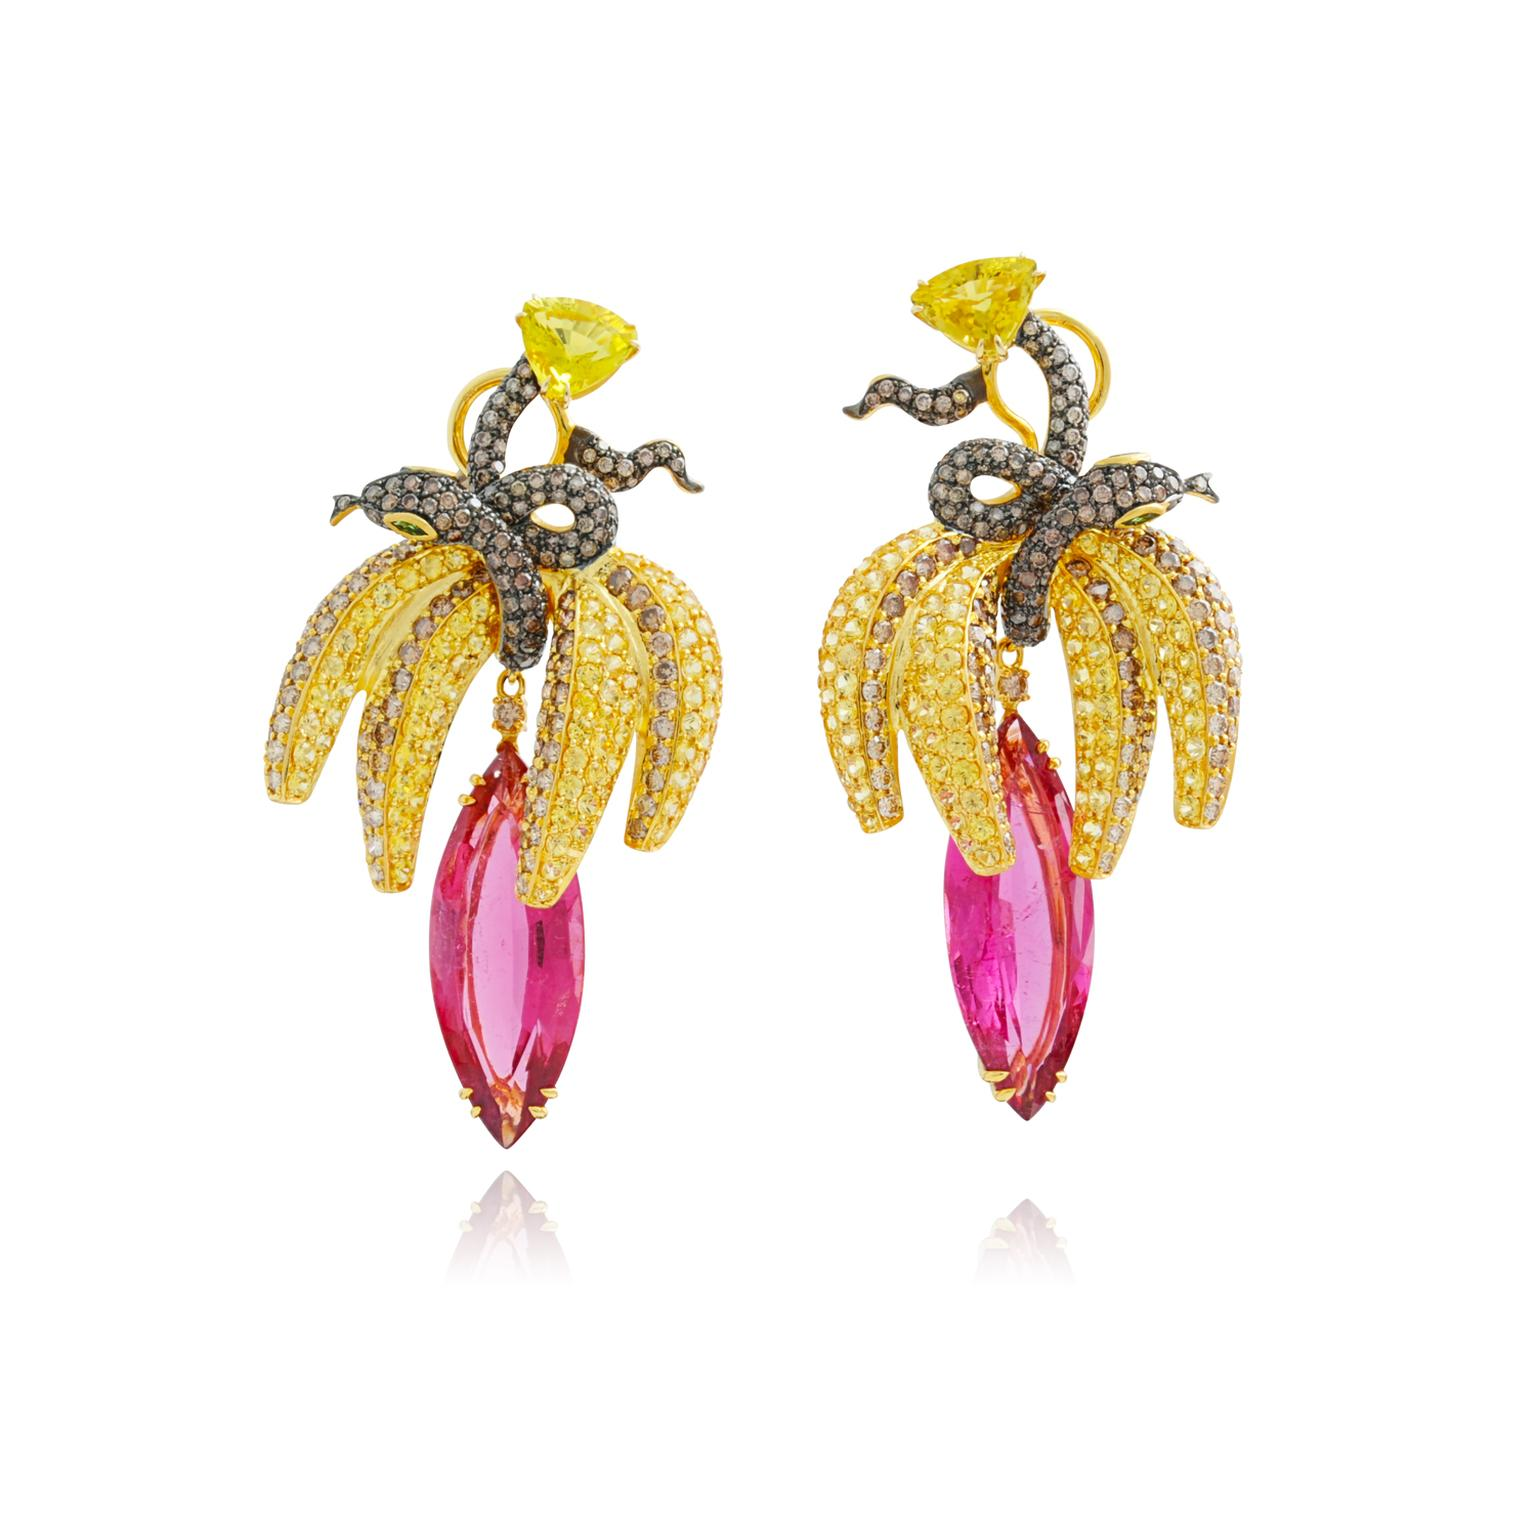 Lydia Courteille Fruits of my Passion pink tourmaline earrings